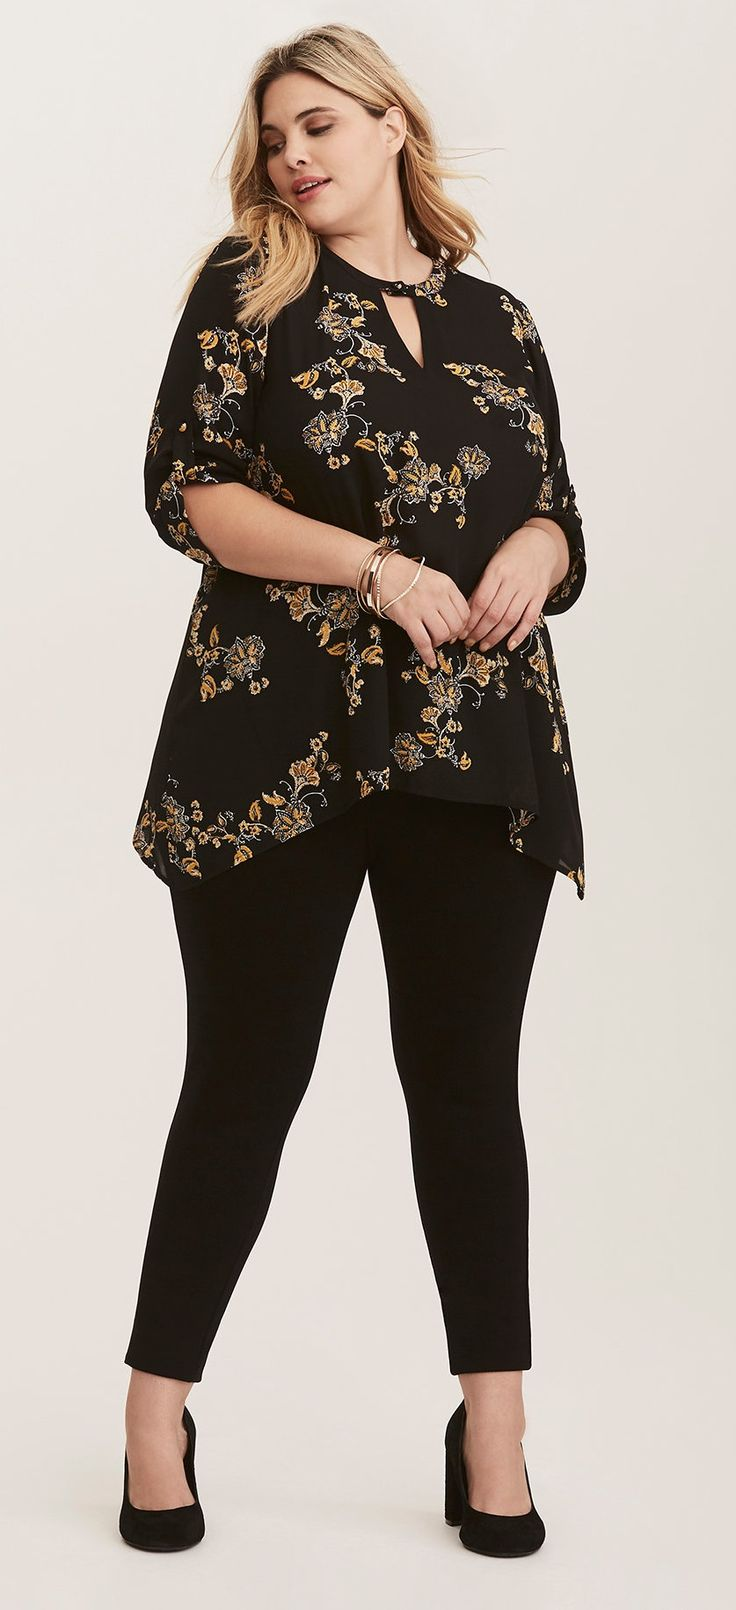 41852 Best Plus Size Fashion Images On Pinterest